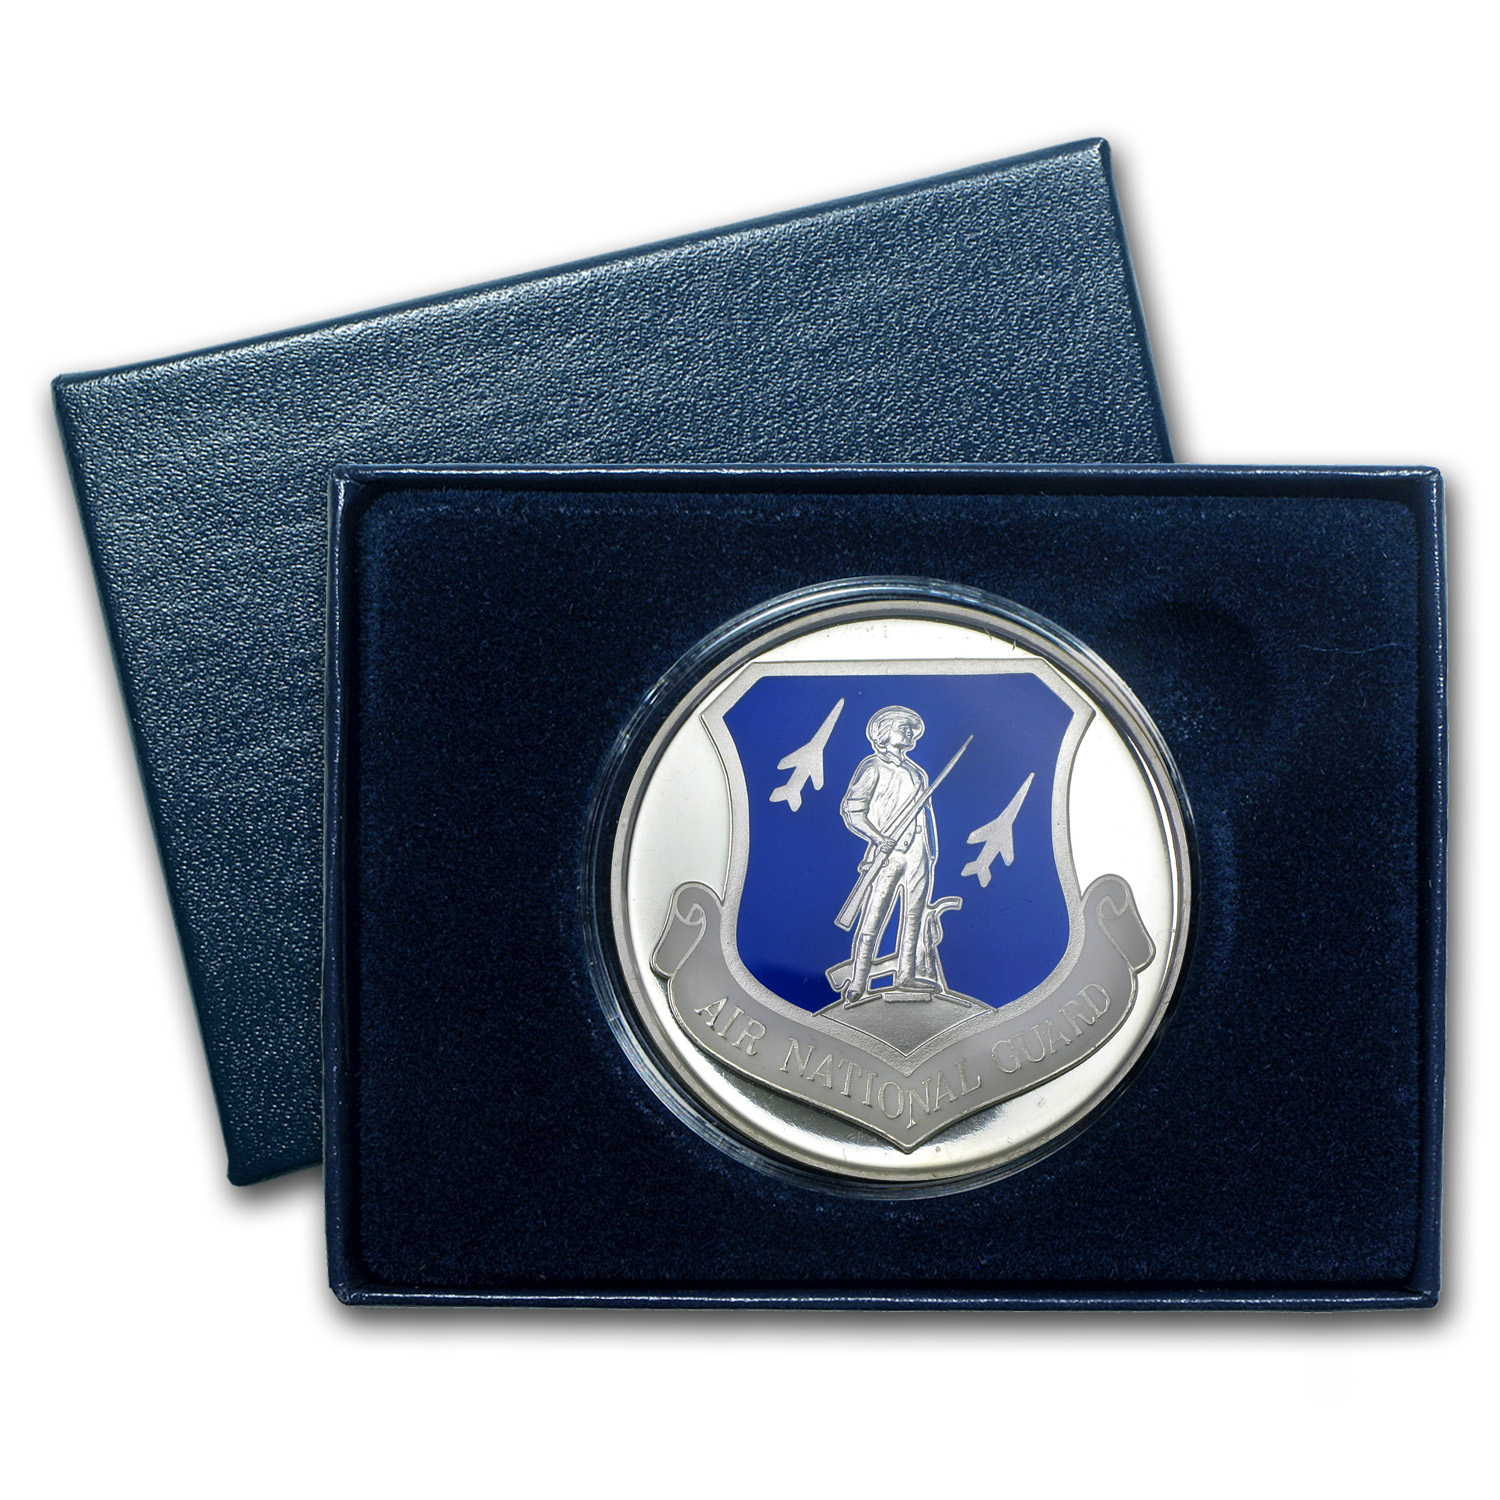 1 oz Silver Rnd - Air National Guard (Enameled, w/Box & Capsule)